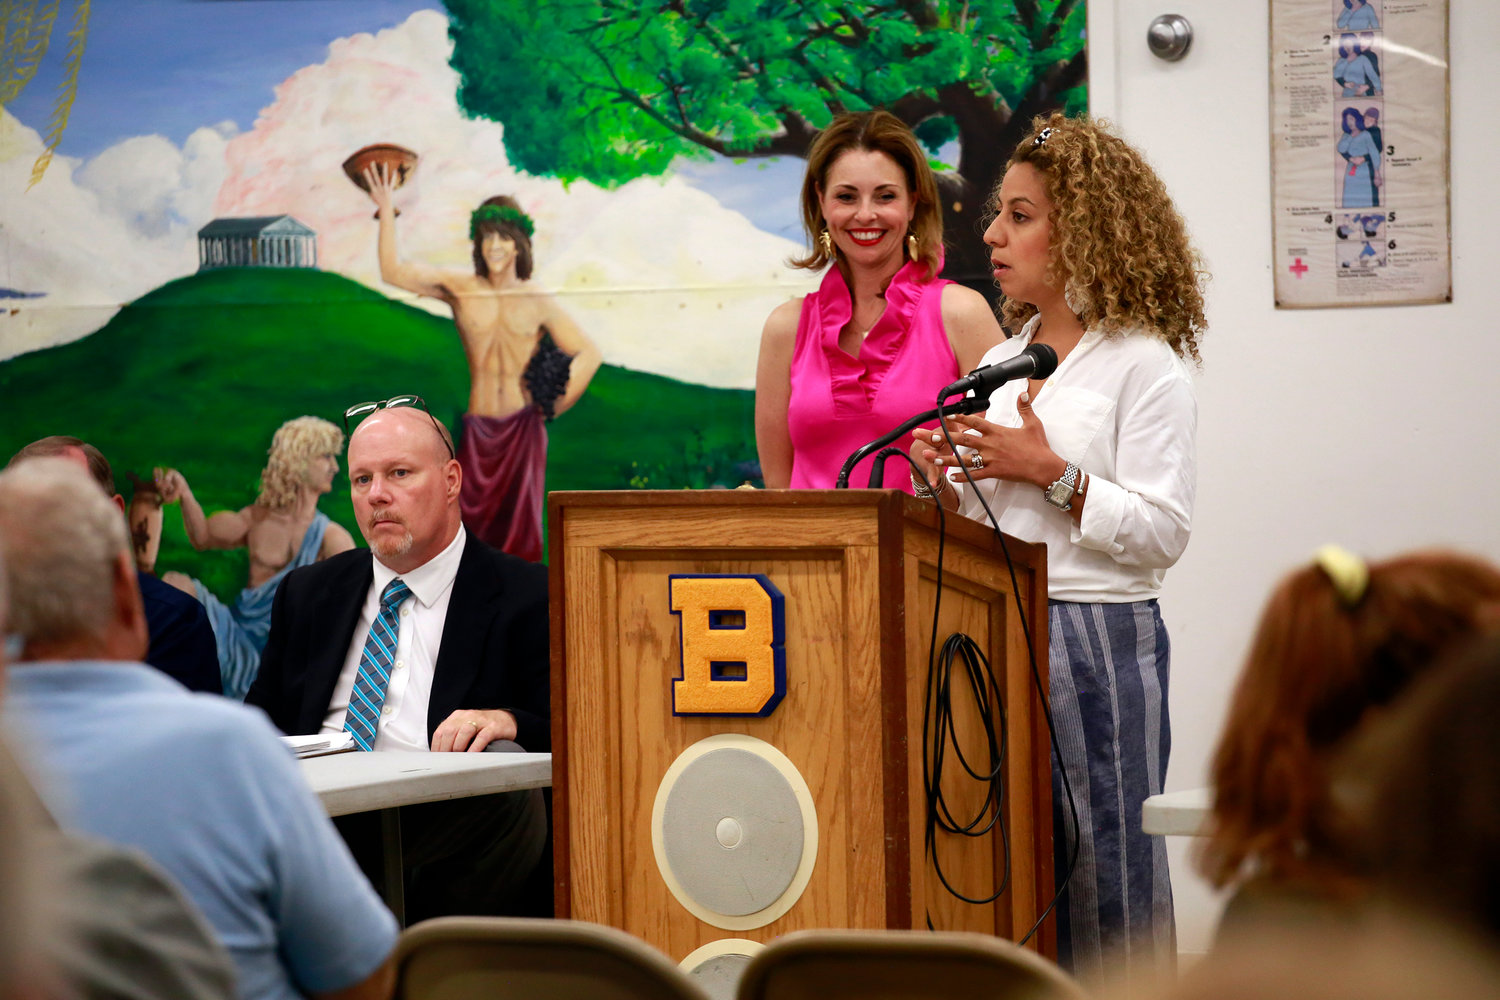 Marwa Fawaz, at lectern, a VHB Engineering senior project manager, told Baldwin residents at a meeting in July that a new zoning ordinance would address flooding concerns. With her was Erin King Sweeney, who recently resigned from the Hempstead Town Board.